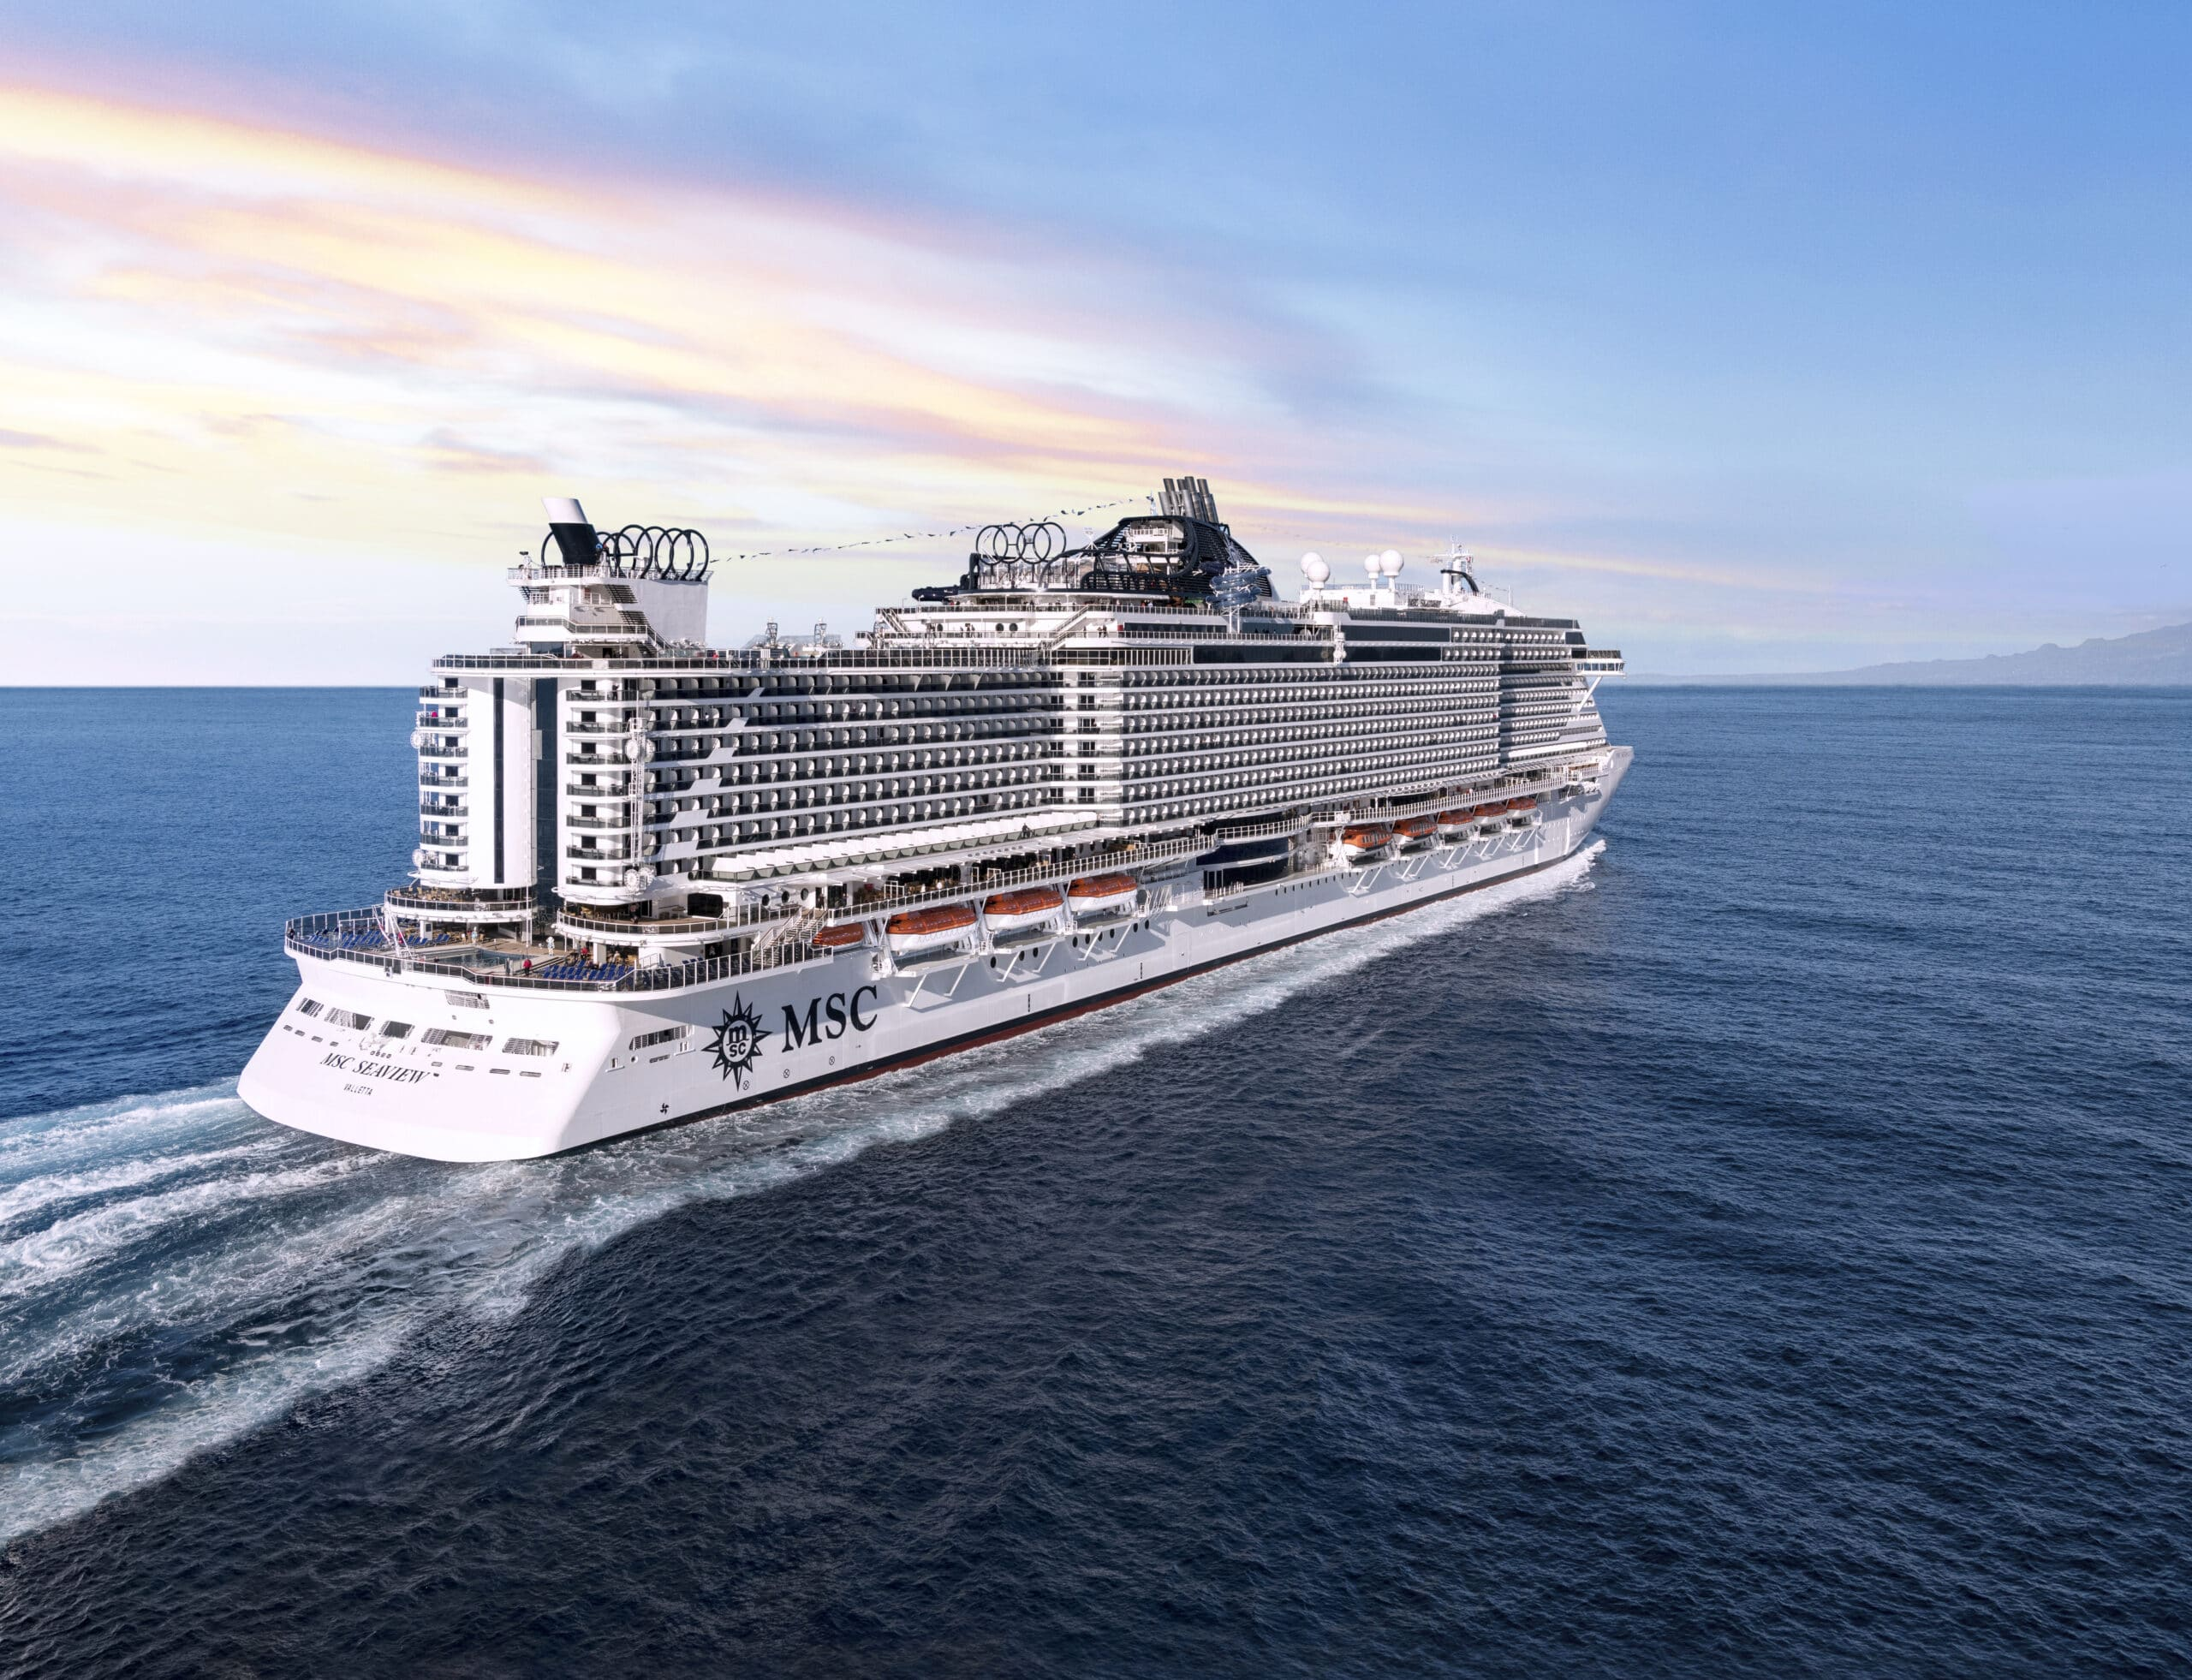 Cruiseschip-MSC Seaview-MSC Cruises-Schip